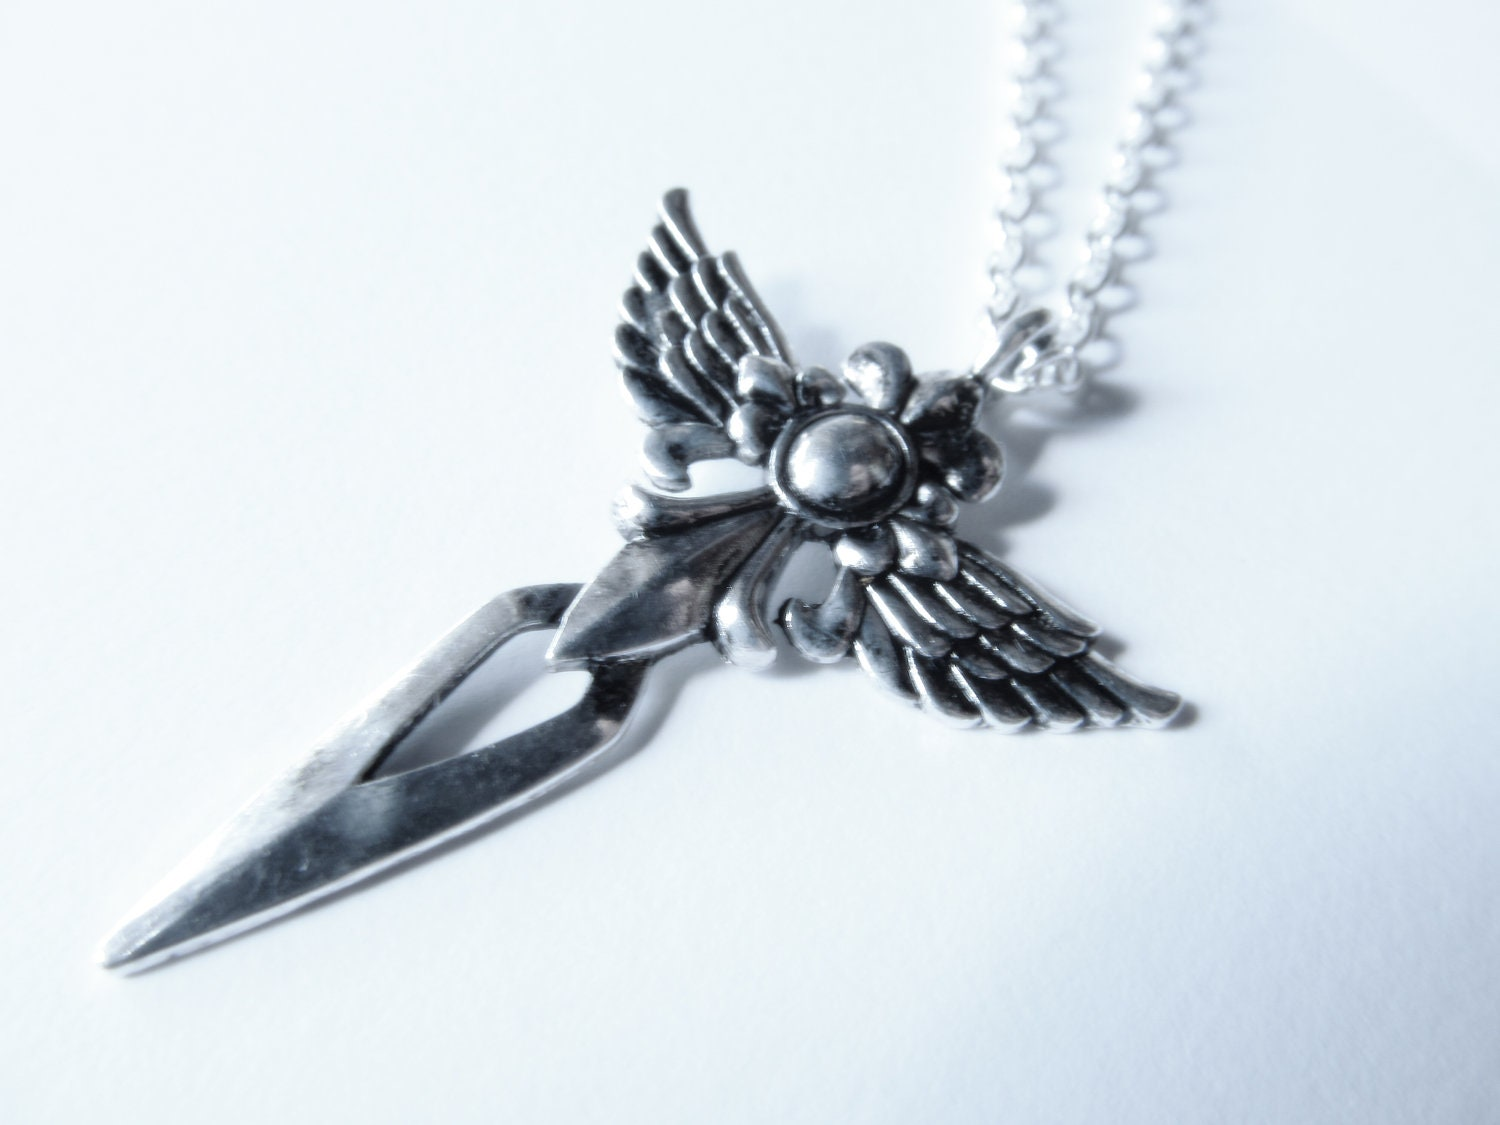 Gothic Winged Dagger Sword Cross Valkyrie Pendant On Chain